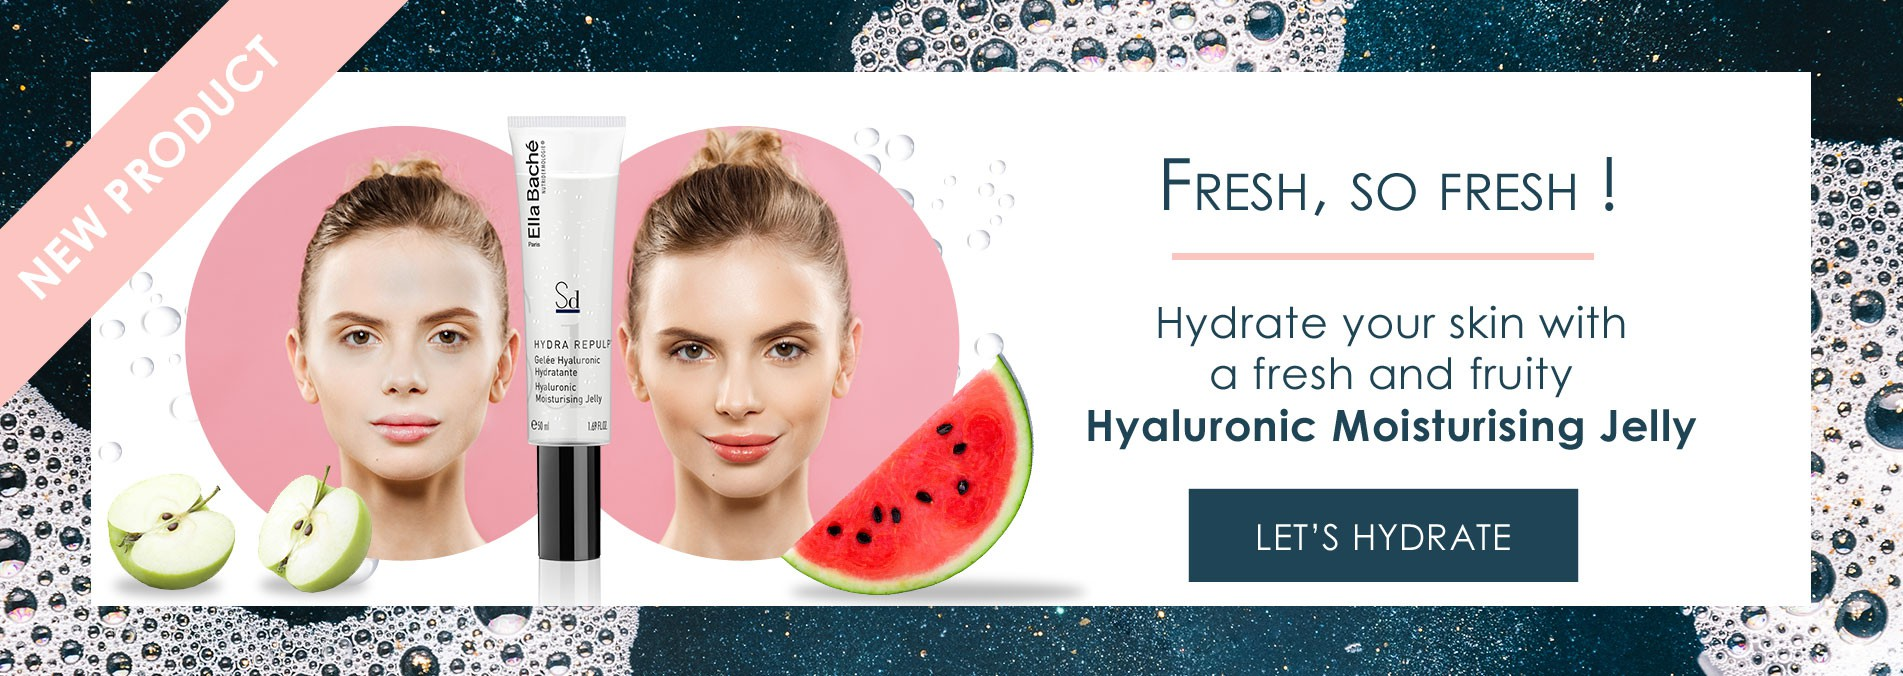 New product : discover our Hyaluronic Moisturising Jelly